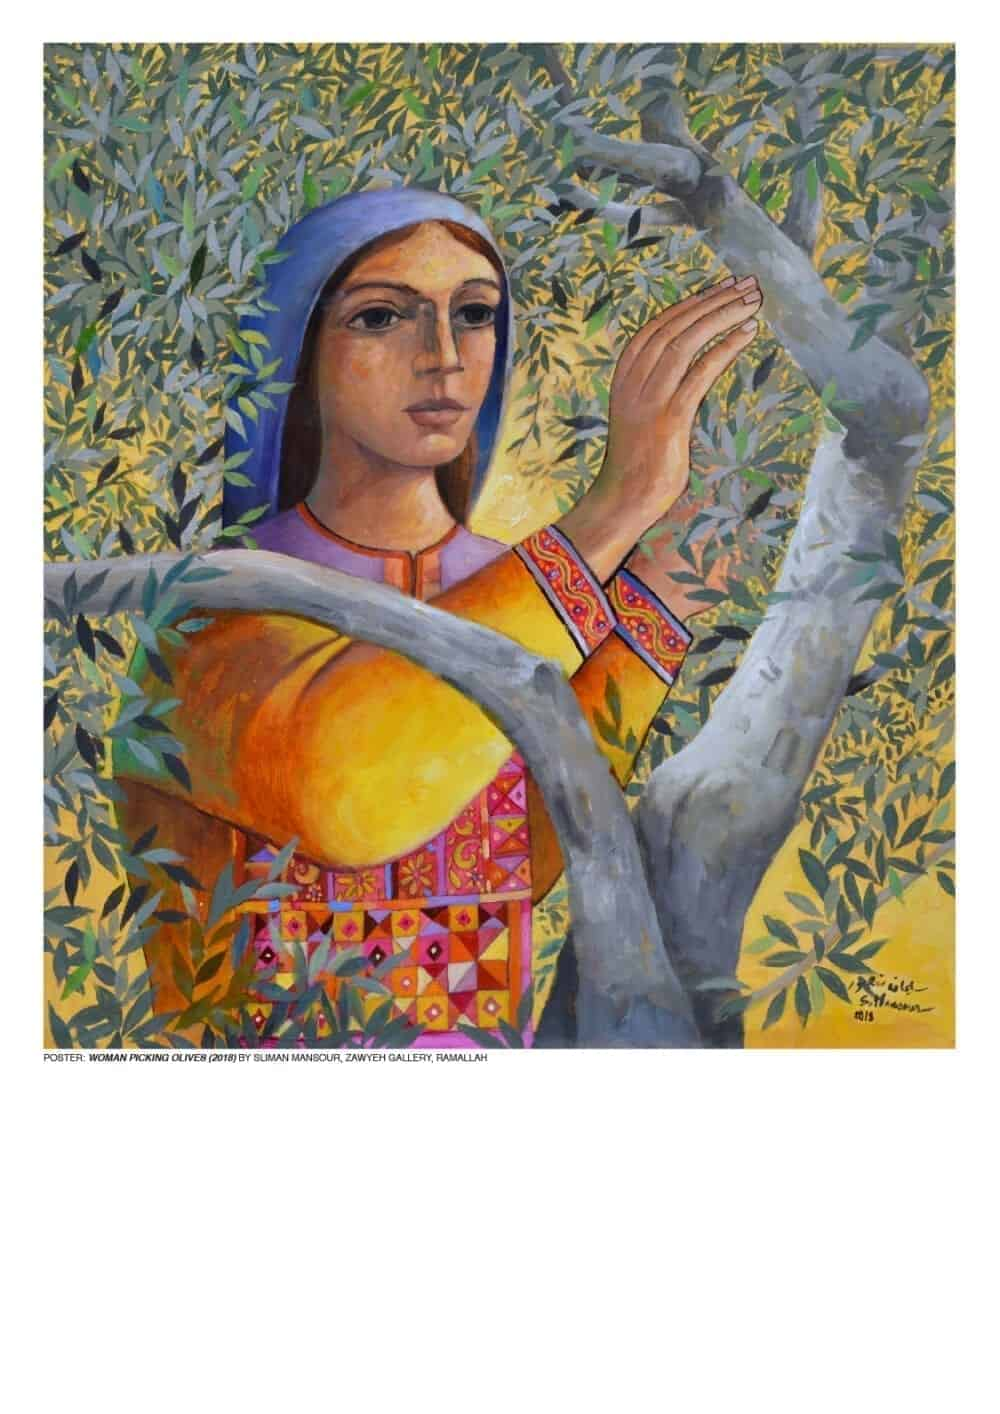 Woman Picking Olives by Sliman Mansour